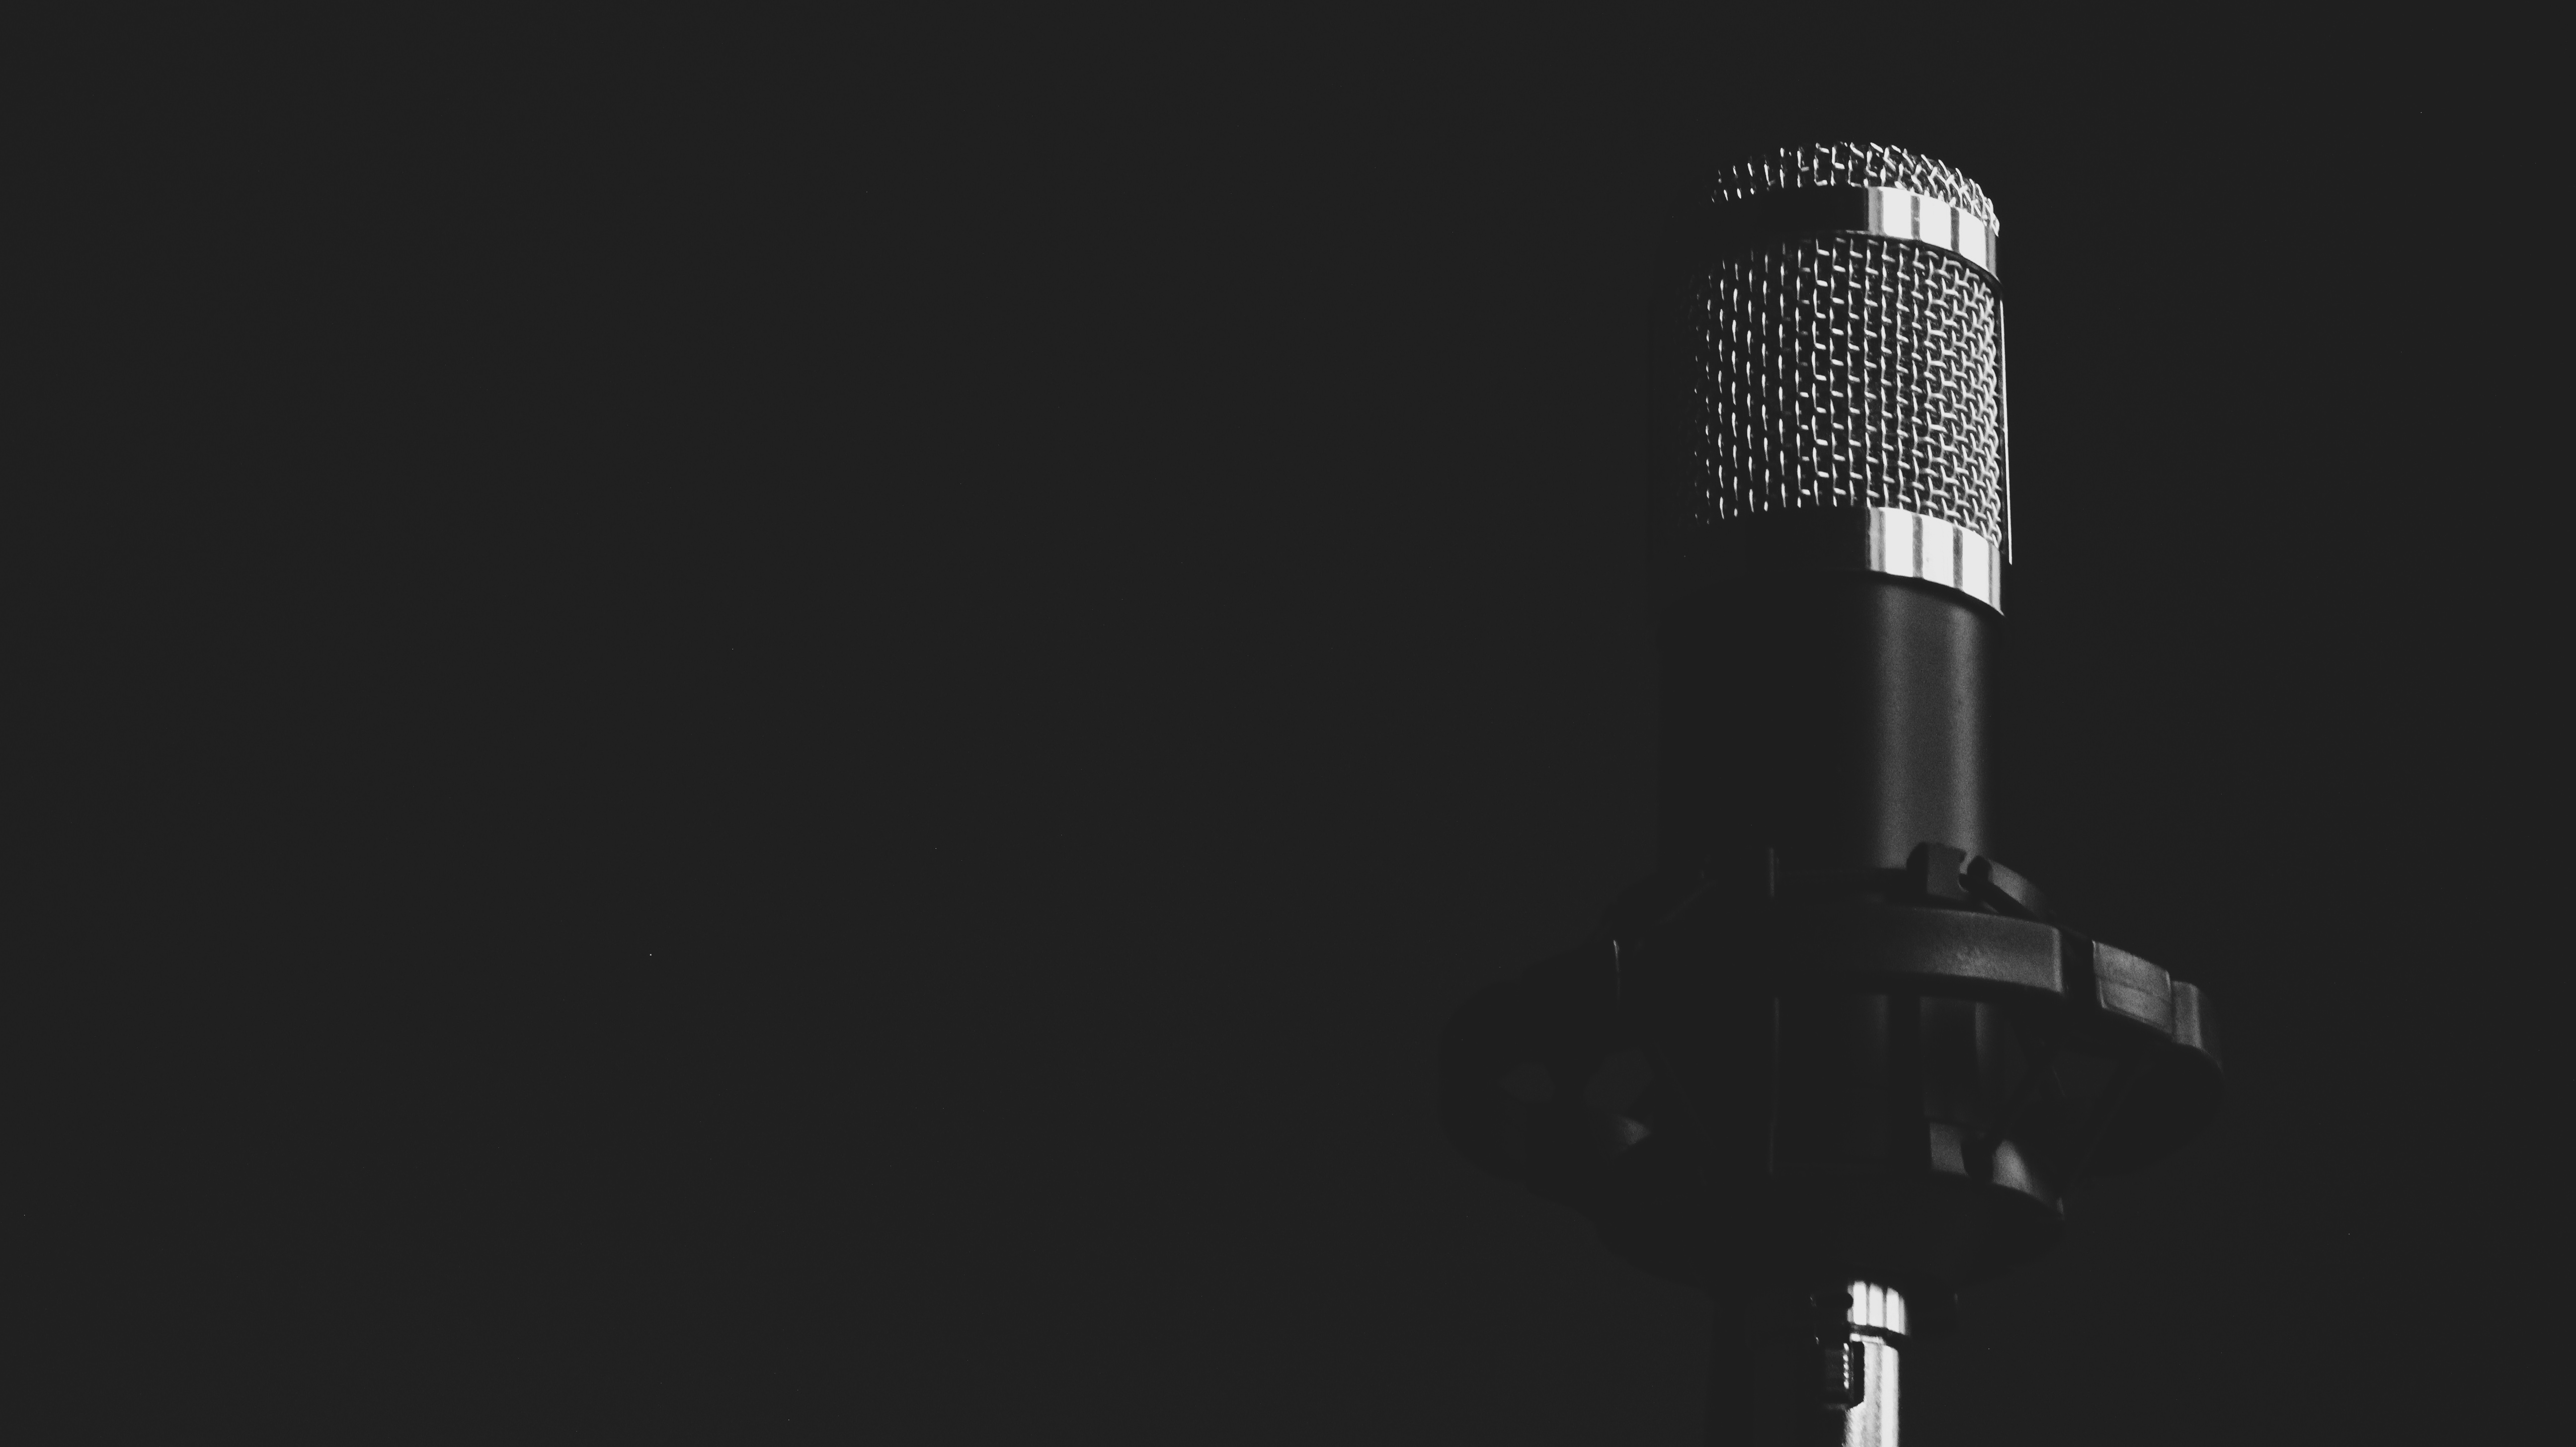 White Iphone 5 Wallpaper Hd 100 Amazing Microphone Photos 183 Pexels 183 Free Stock Photos